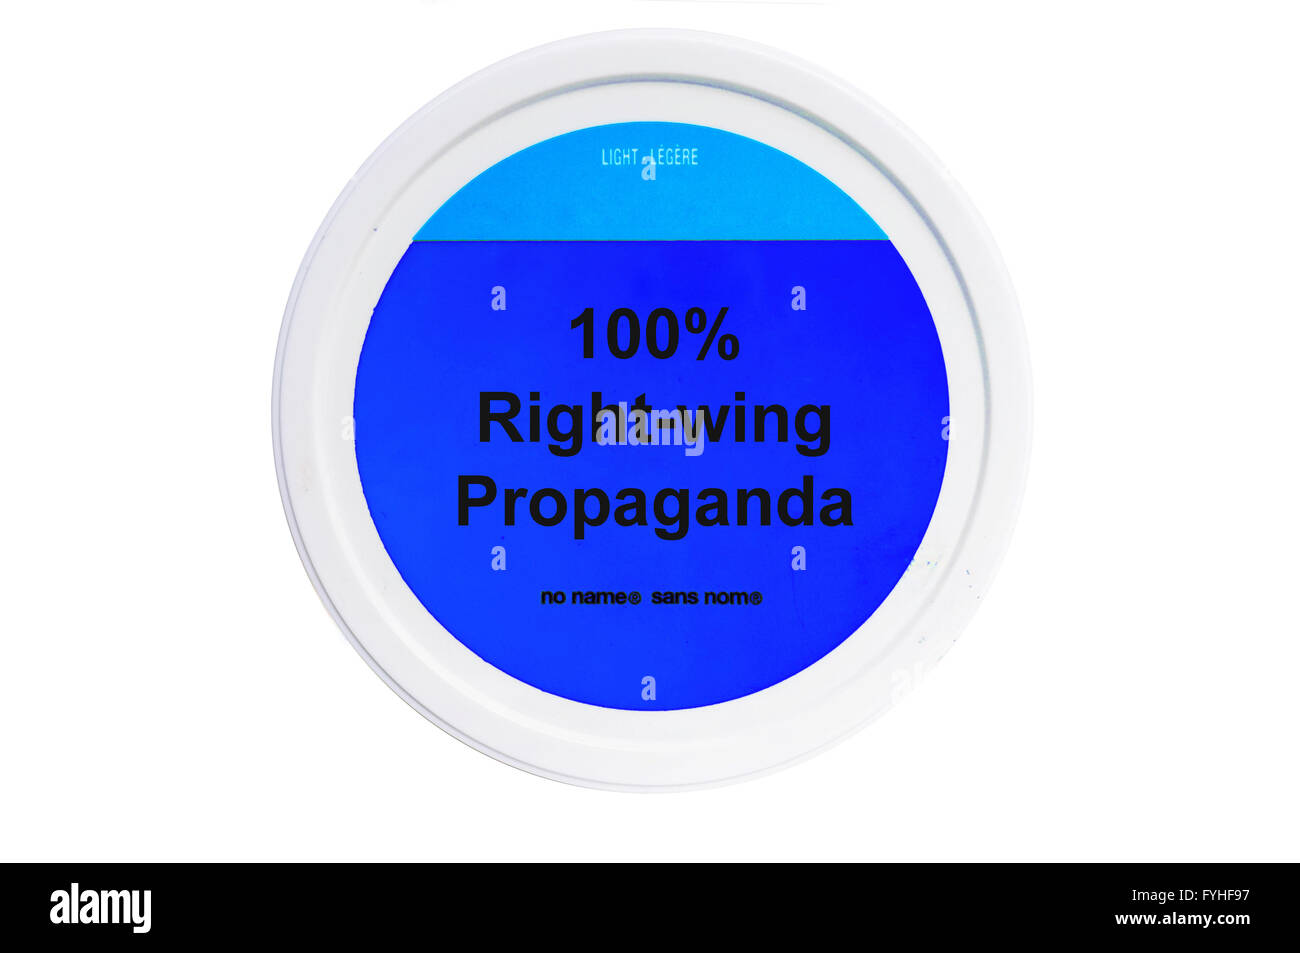 A tub with 100% Right-wing propaganda written on the label photographed against a white background. - Stock Image